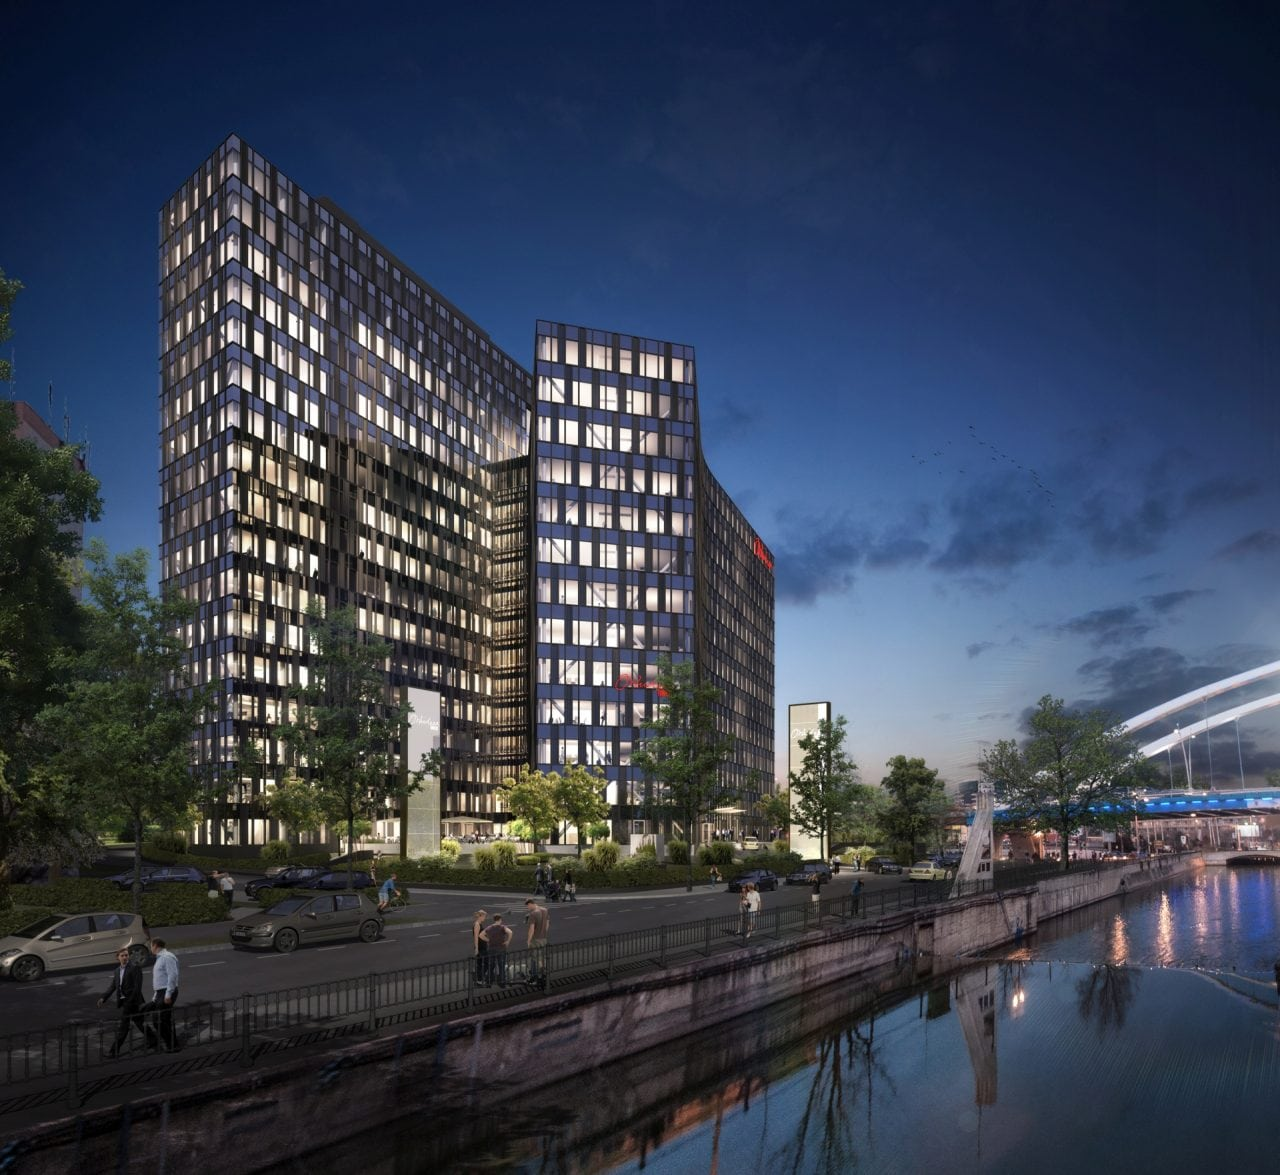 Bukarest Büro Orchidea Towers Visualisierung Nacht - Politehnica - noua destinatie in business